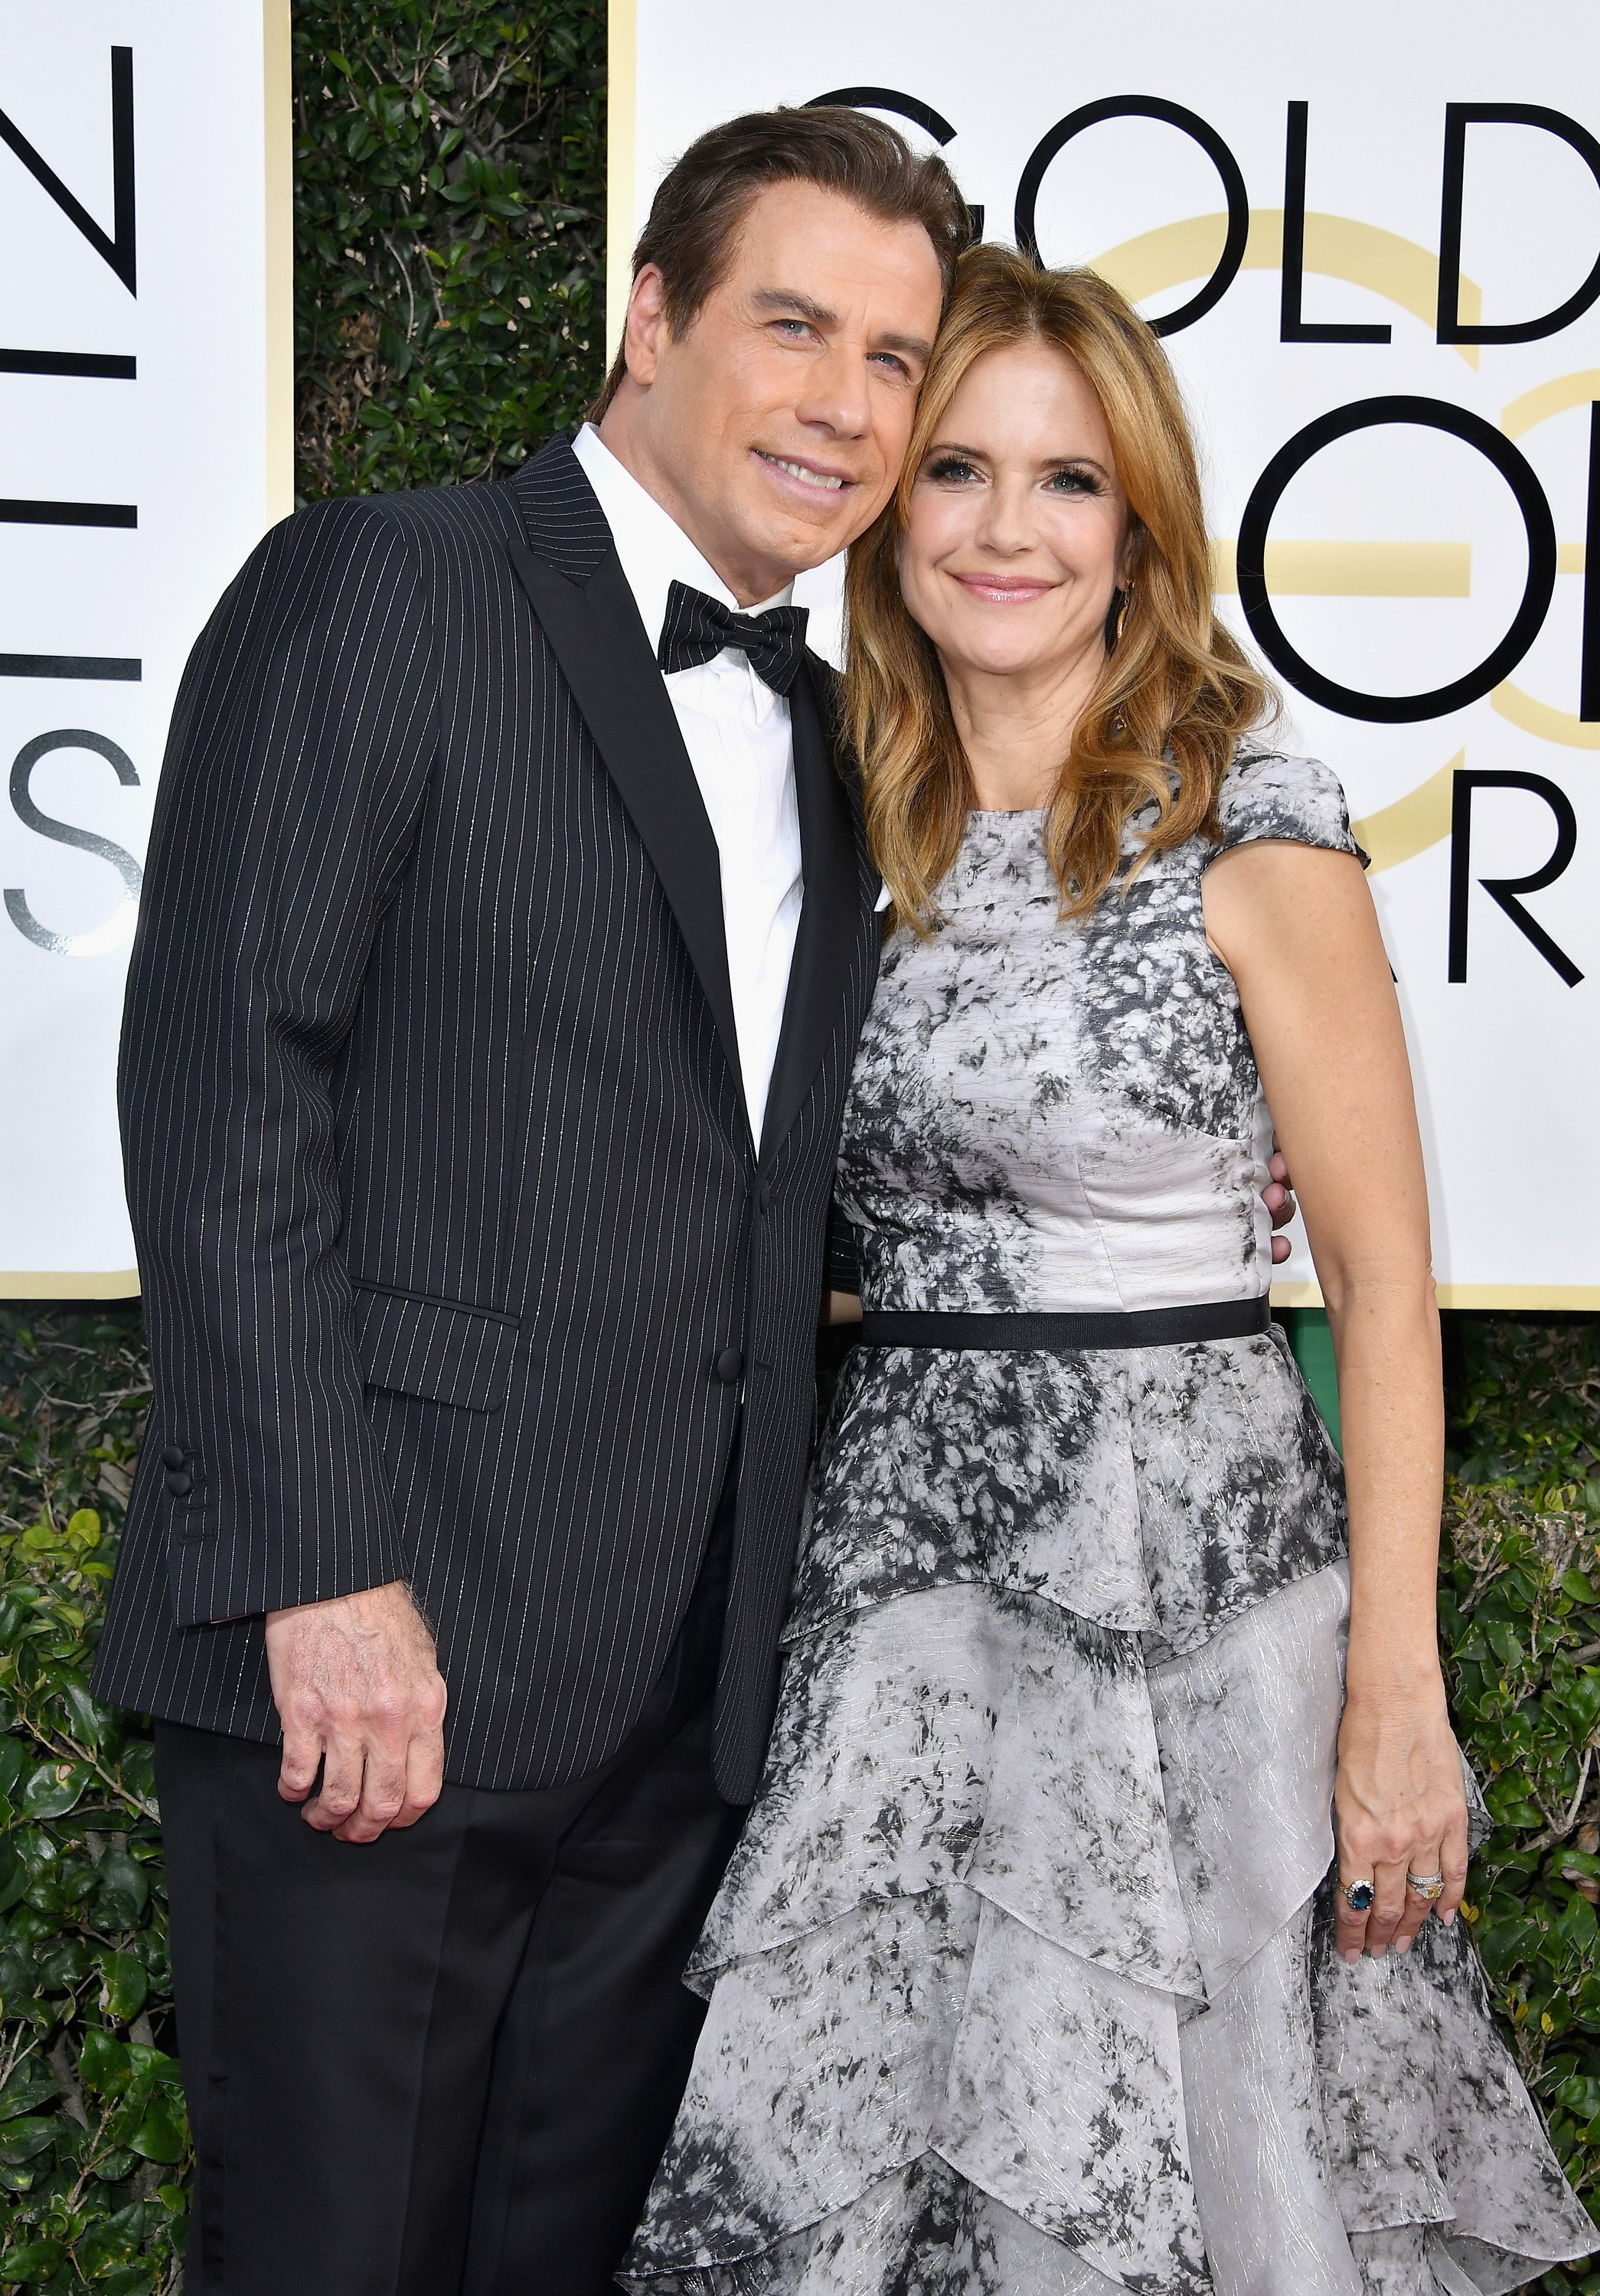 John Travolta and his late wife, Kelly Preston pictured together at the 74th Annual Golden Globe Awards at The Beverly Hilton Hotel, 2017 | Photo: Getty Images